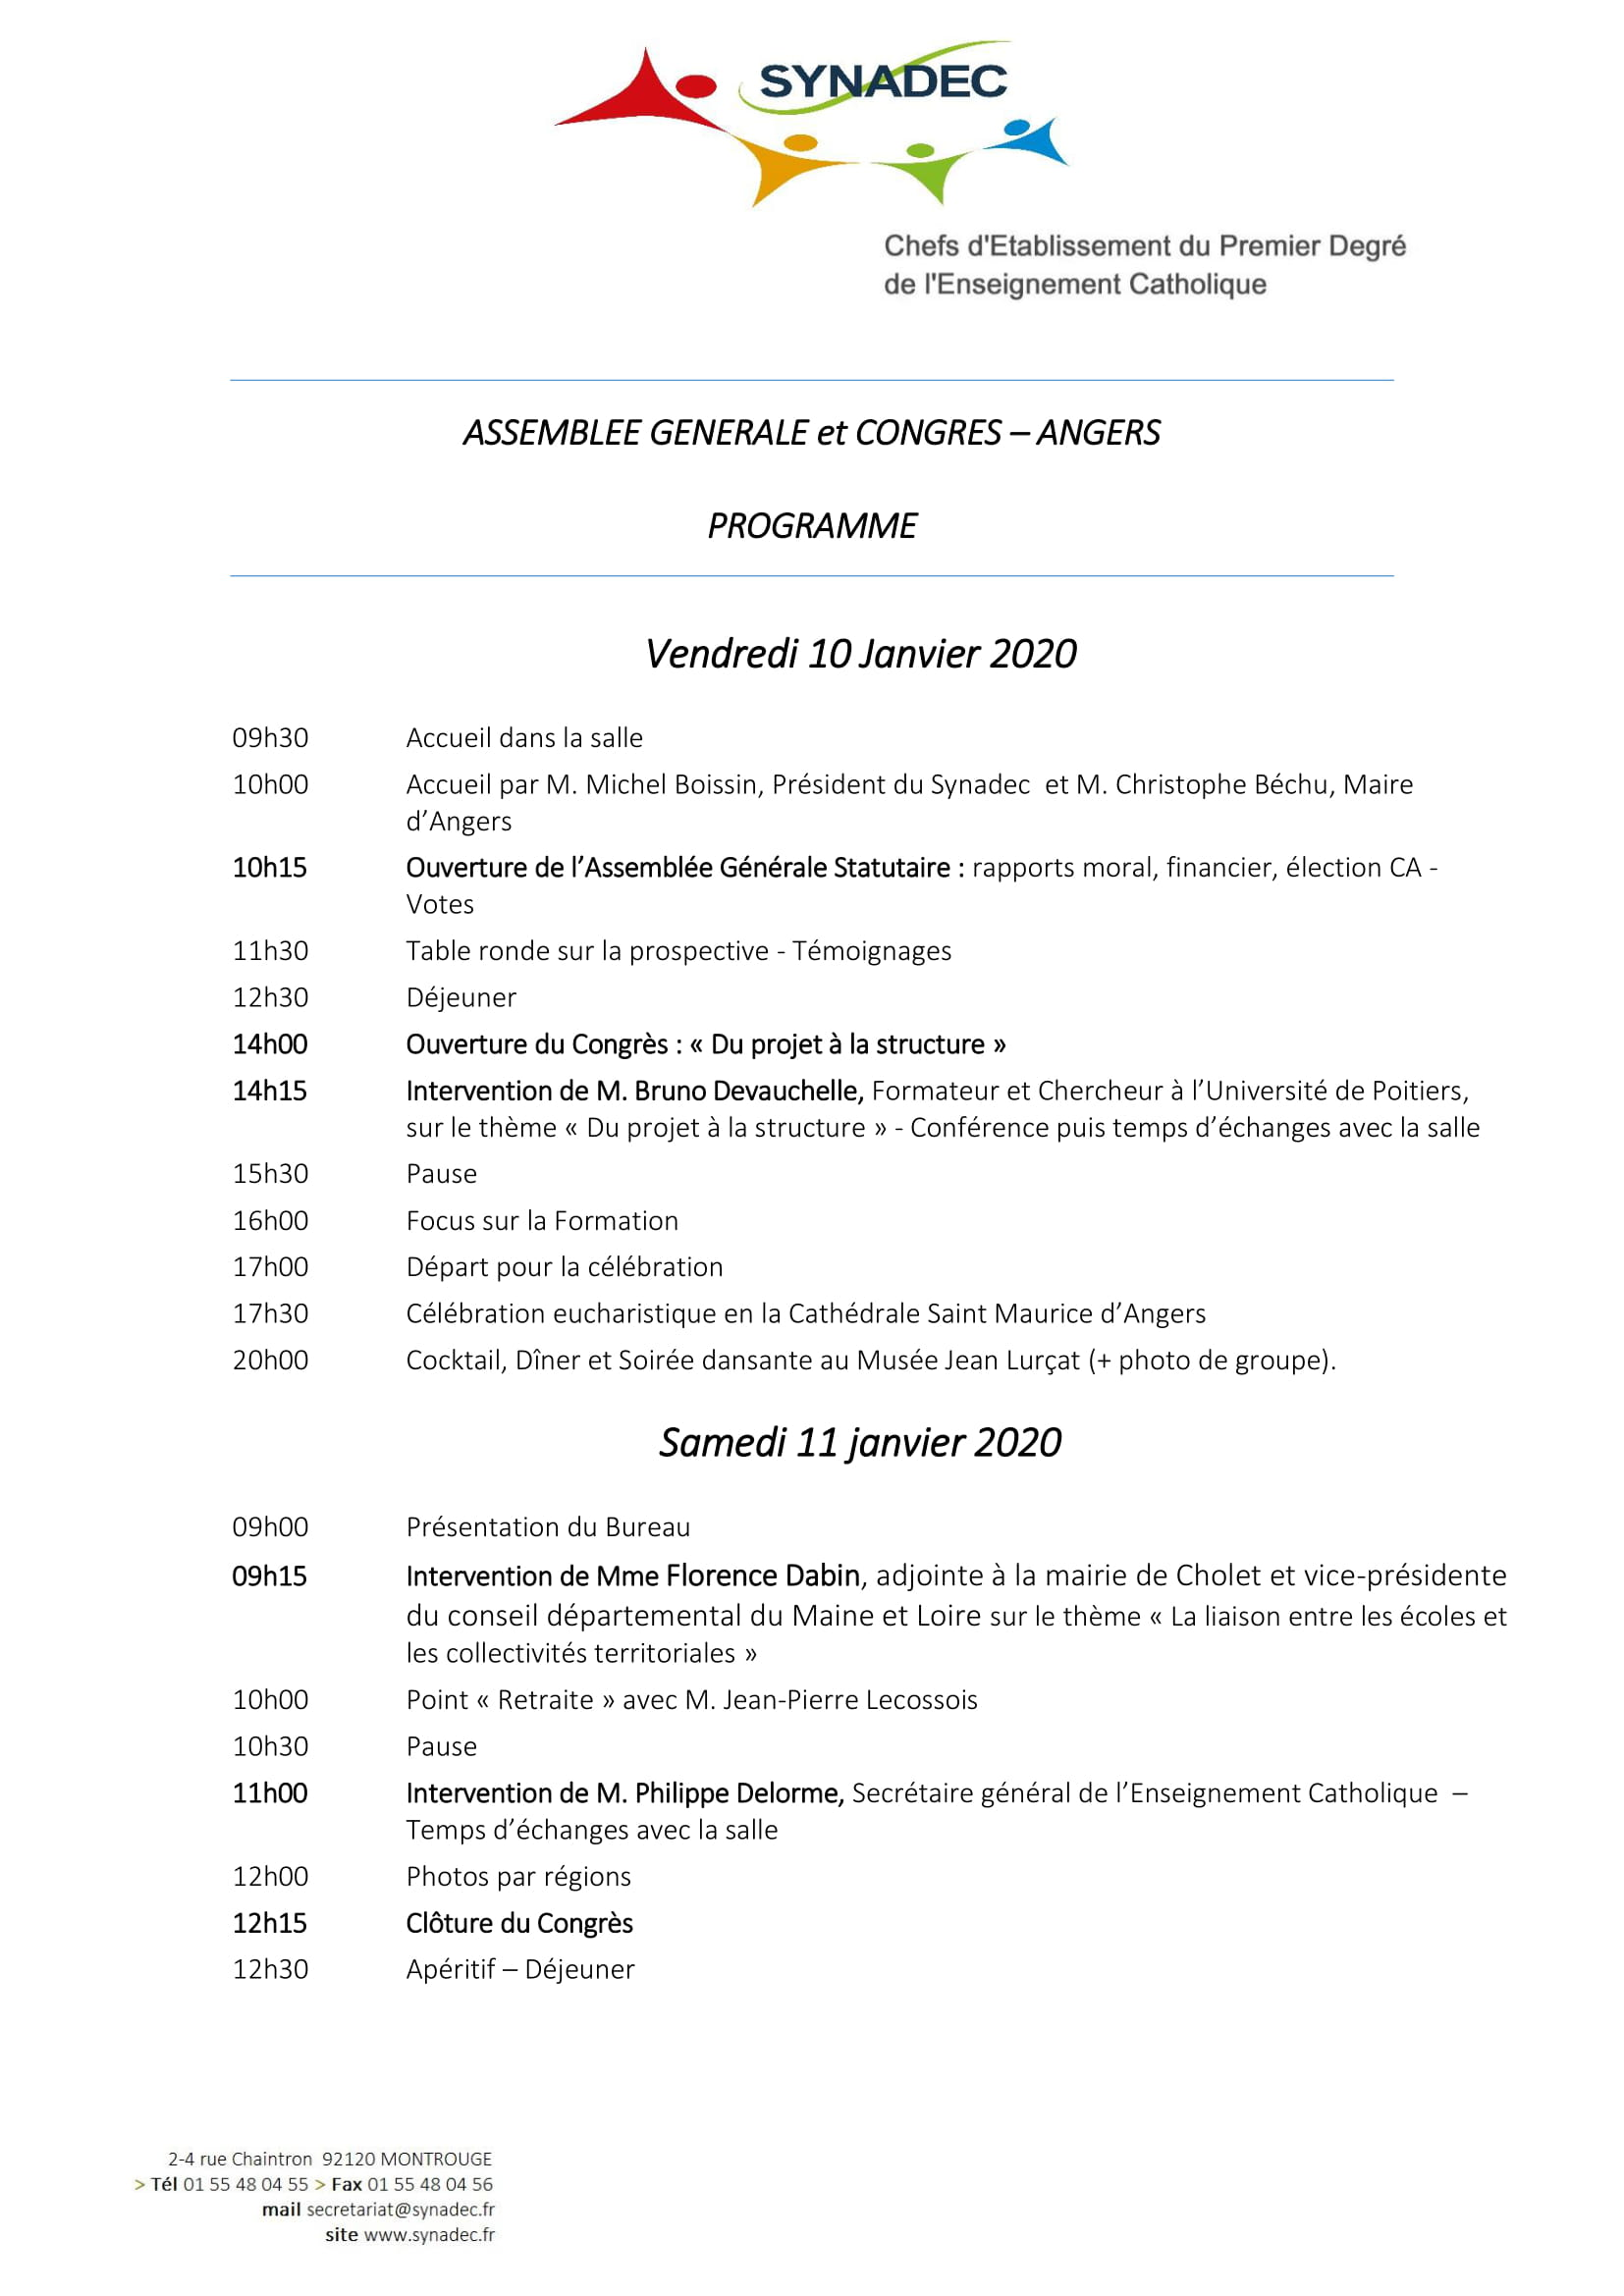 Programme AG 2020 Angers